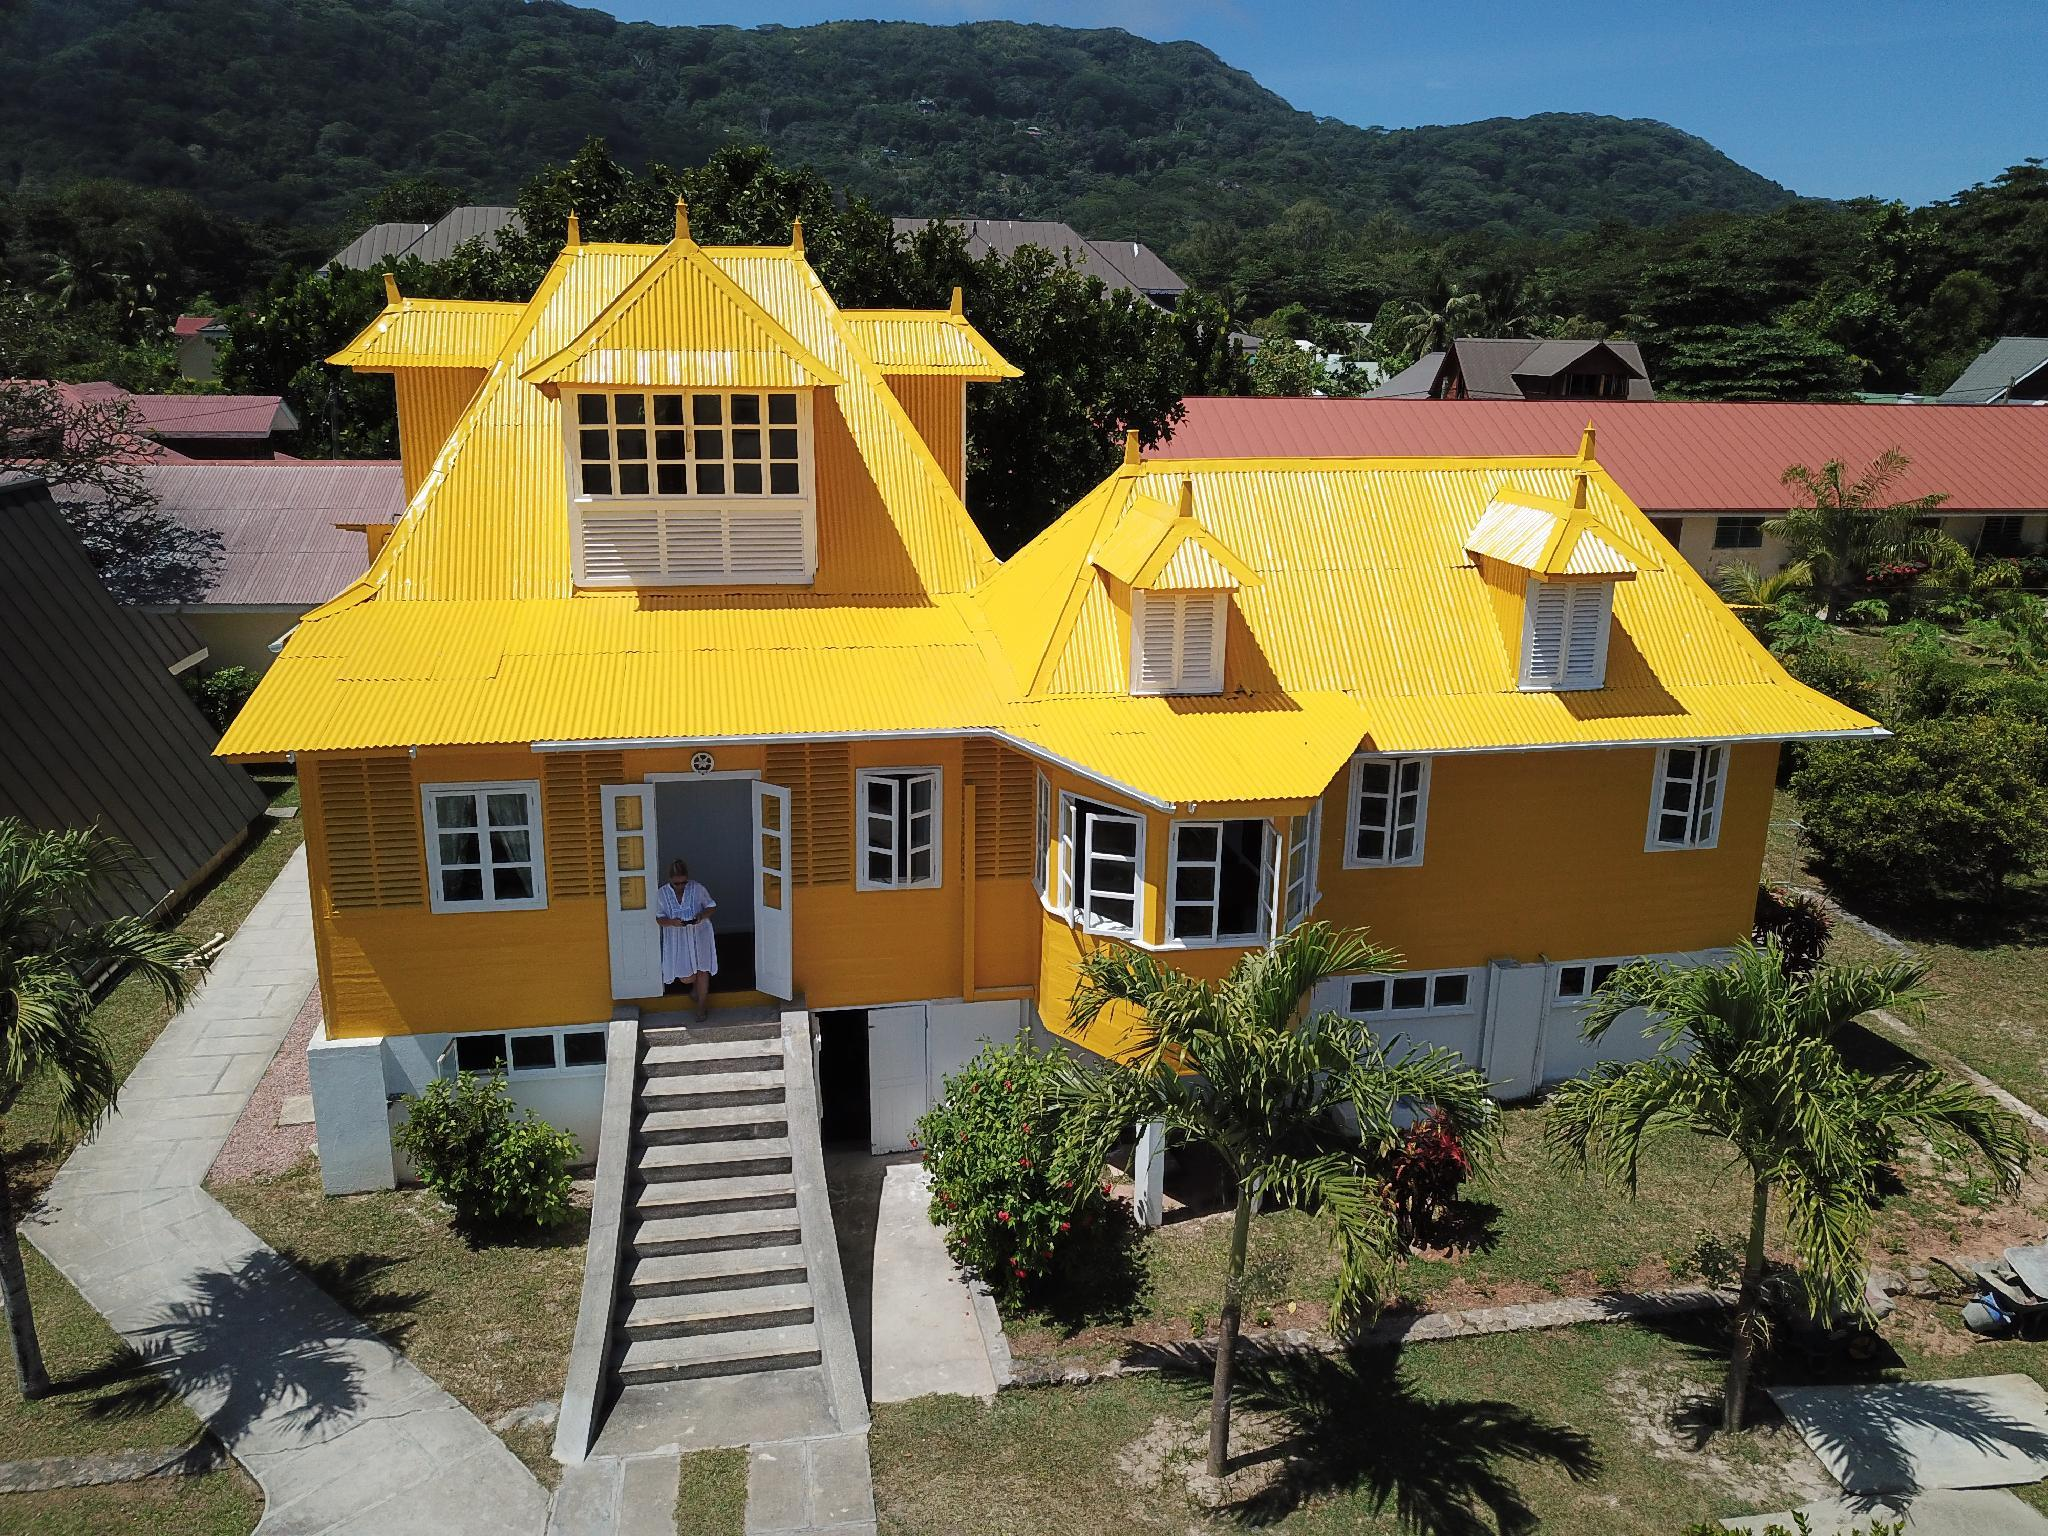 Gult hus (Yellow House)